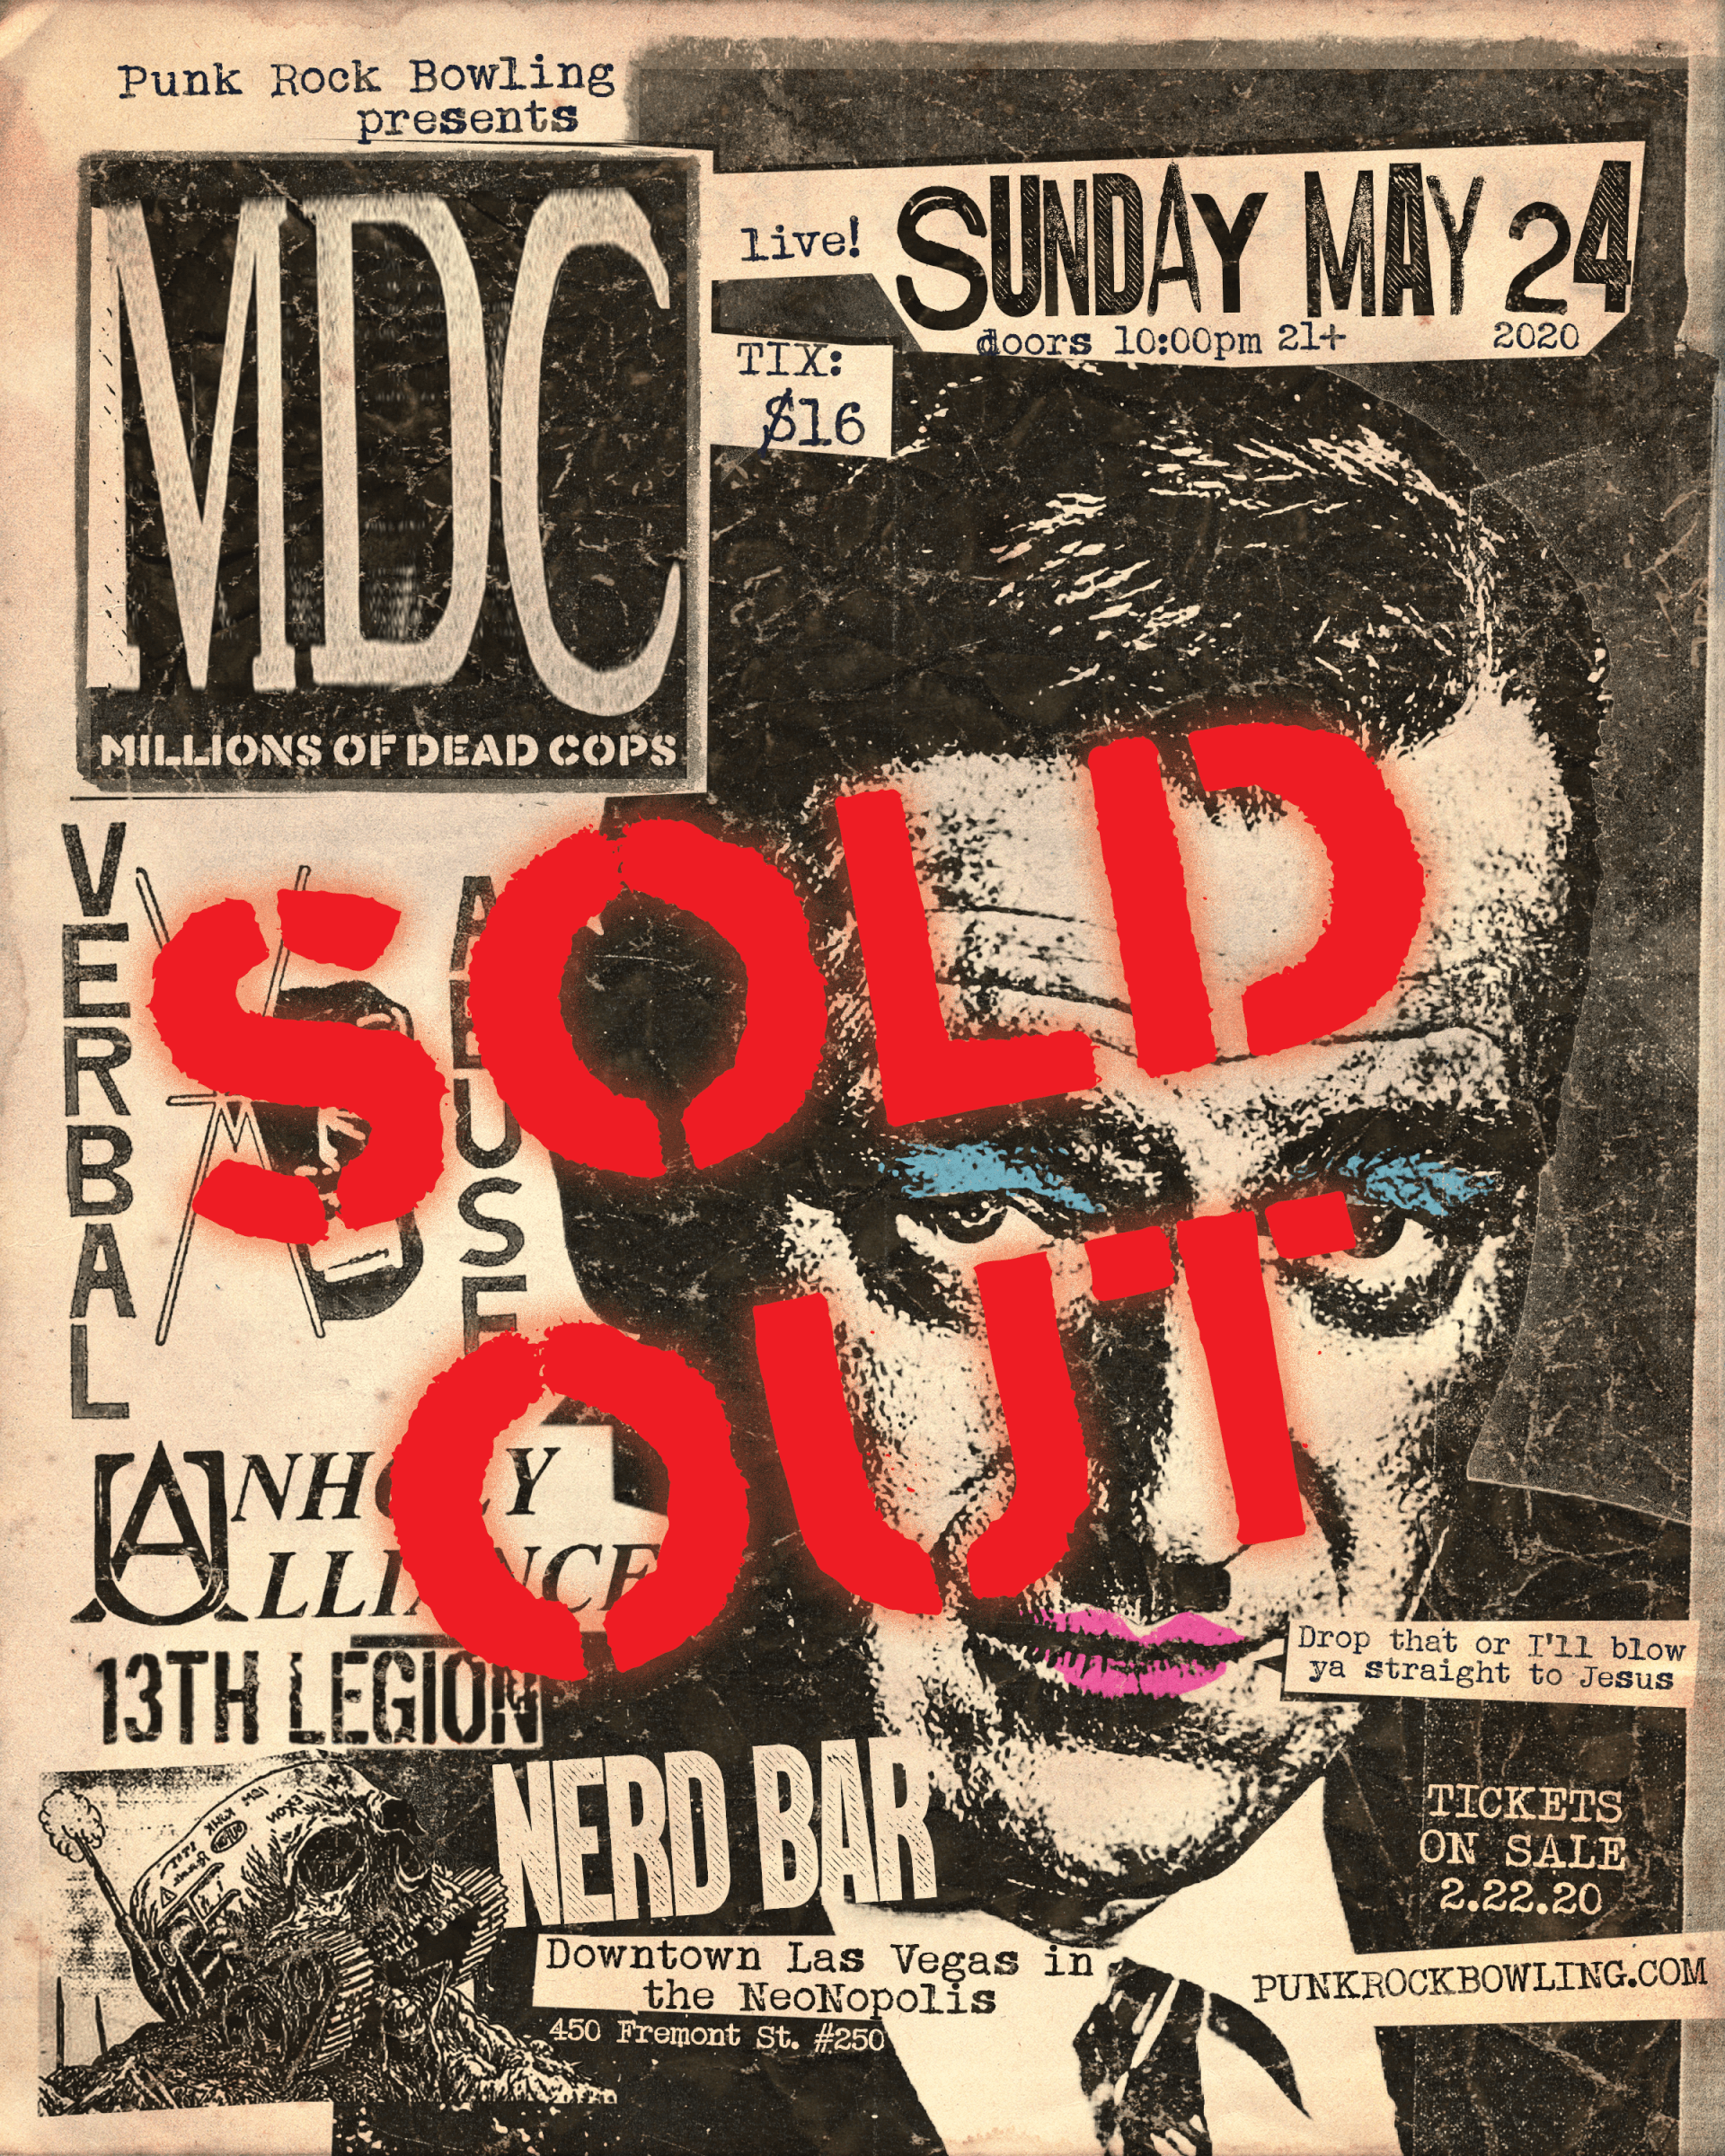 MDC Verbal Abuse Punk Rock Bowling 2020 Las Vegas sold out